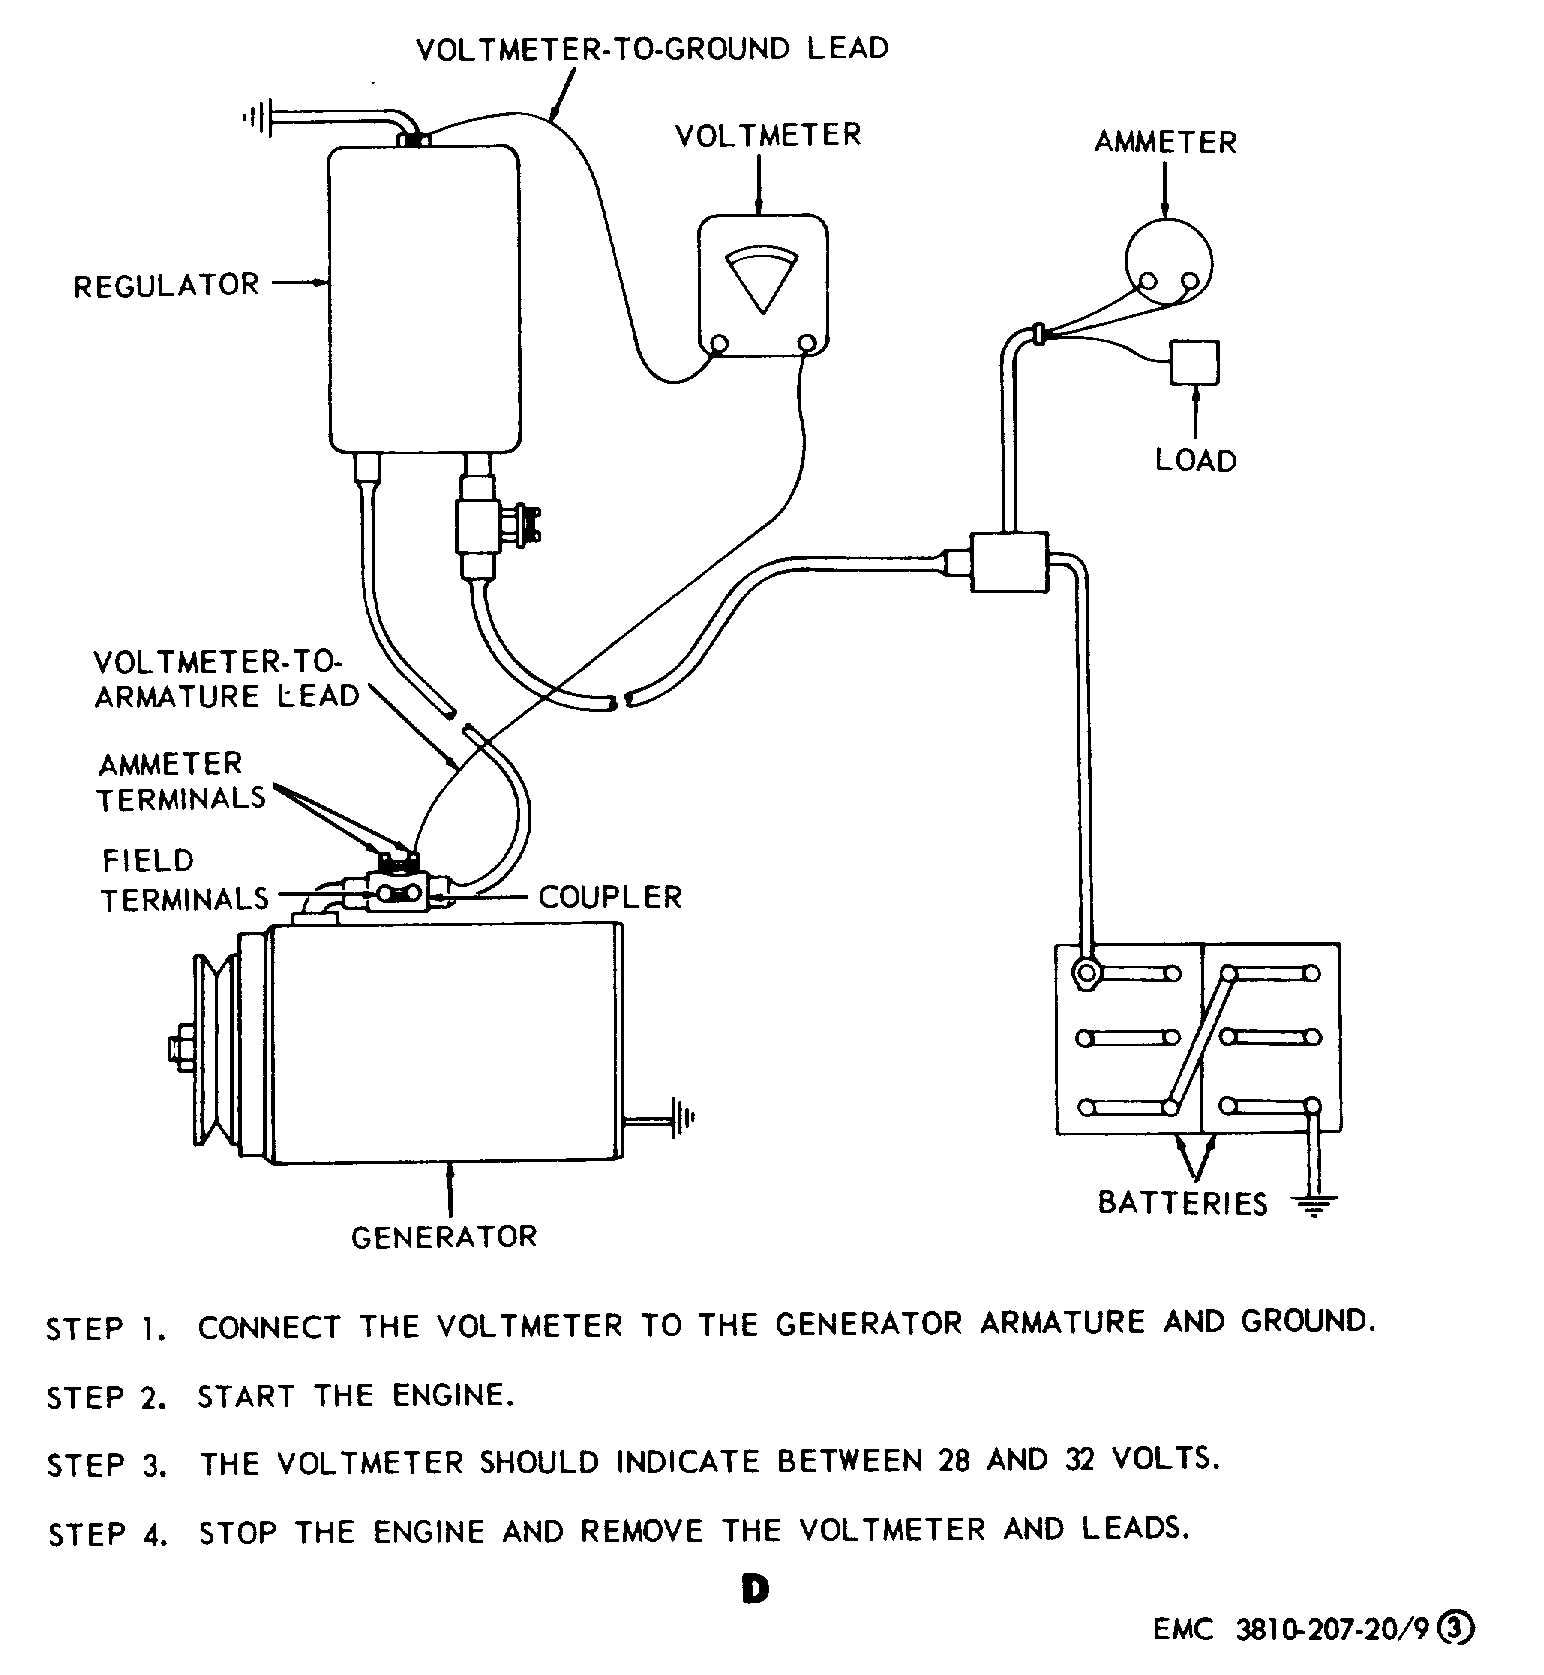 12 Volt Generator Voltage Regulator Wiring Diagram With Images